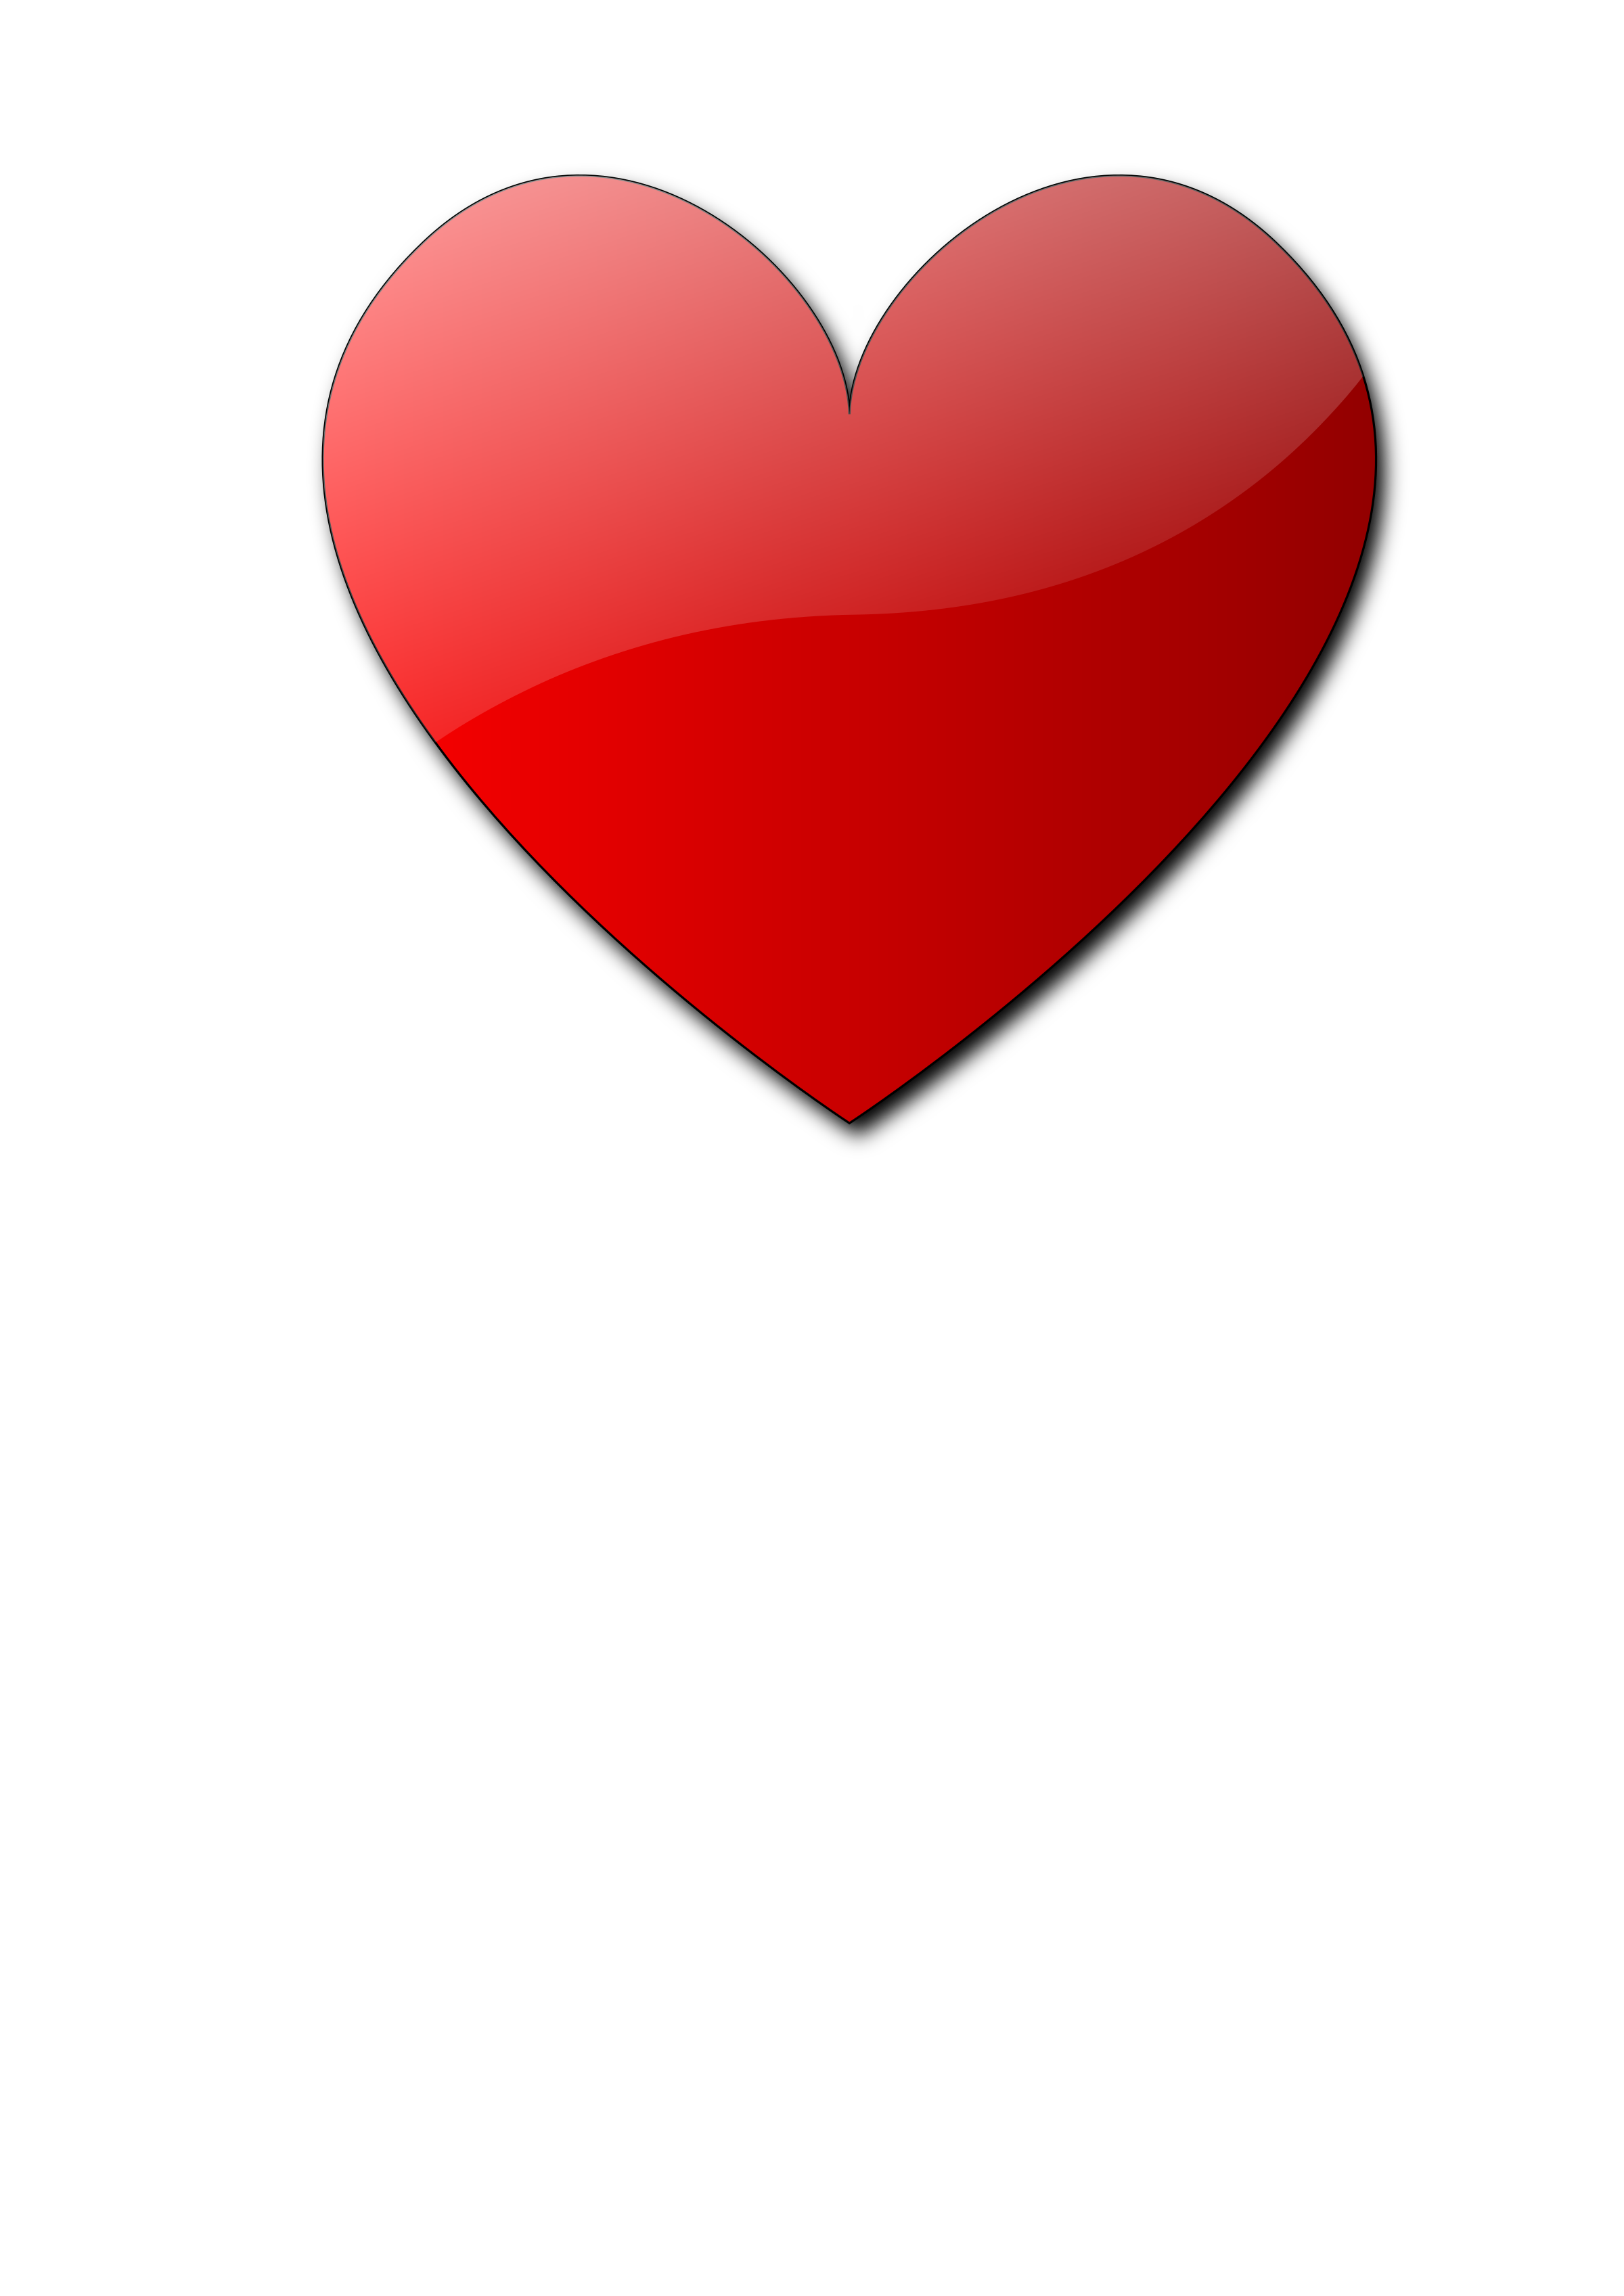 Heart, png small. Heart image library